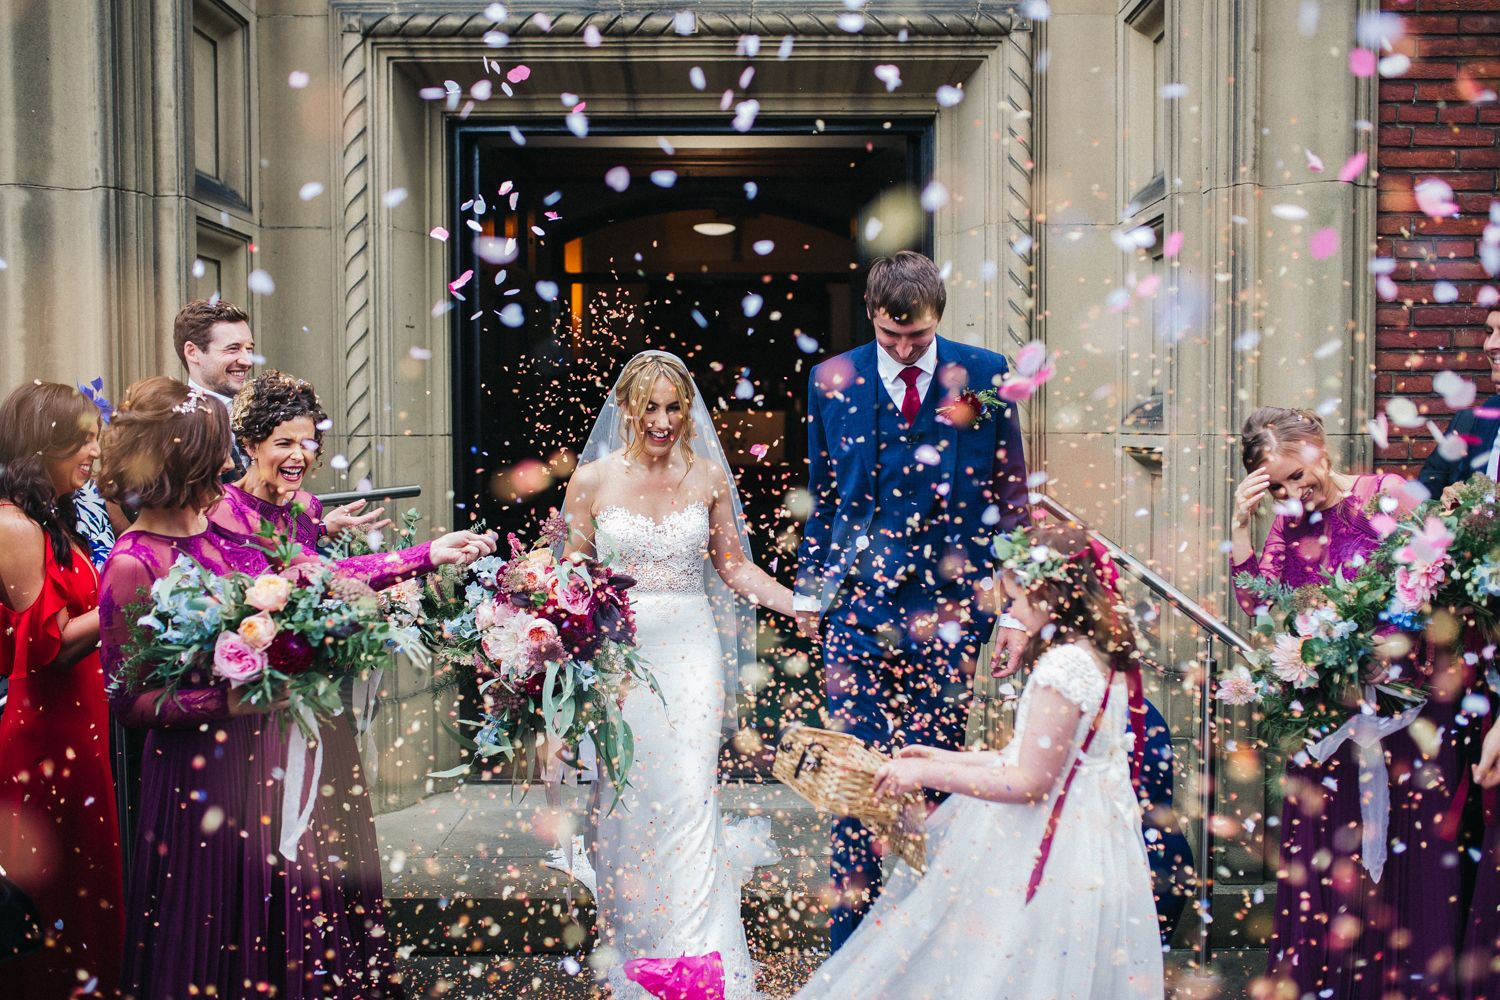 Ð?аÑ?Ñ?инки по запÑ?оÑ?Ñ? wedding confetti photography